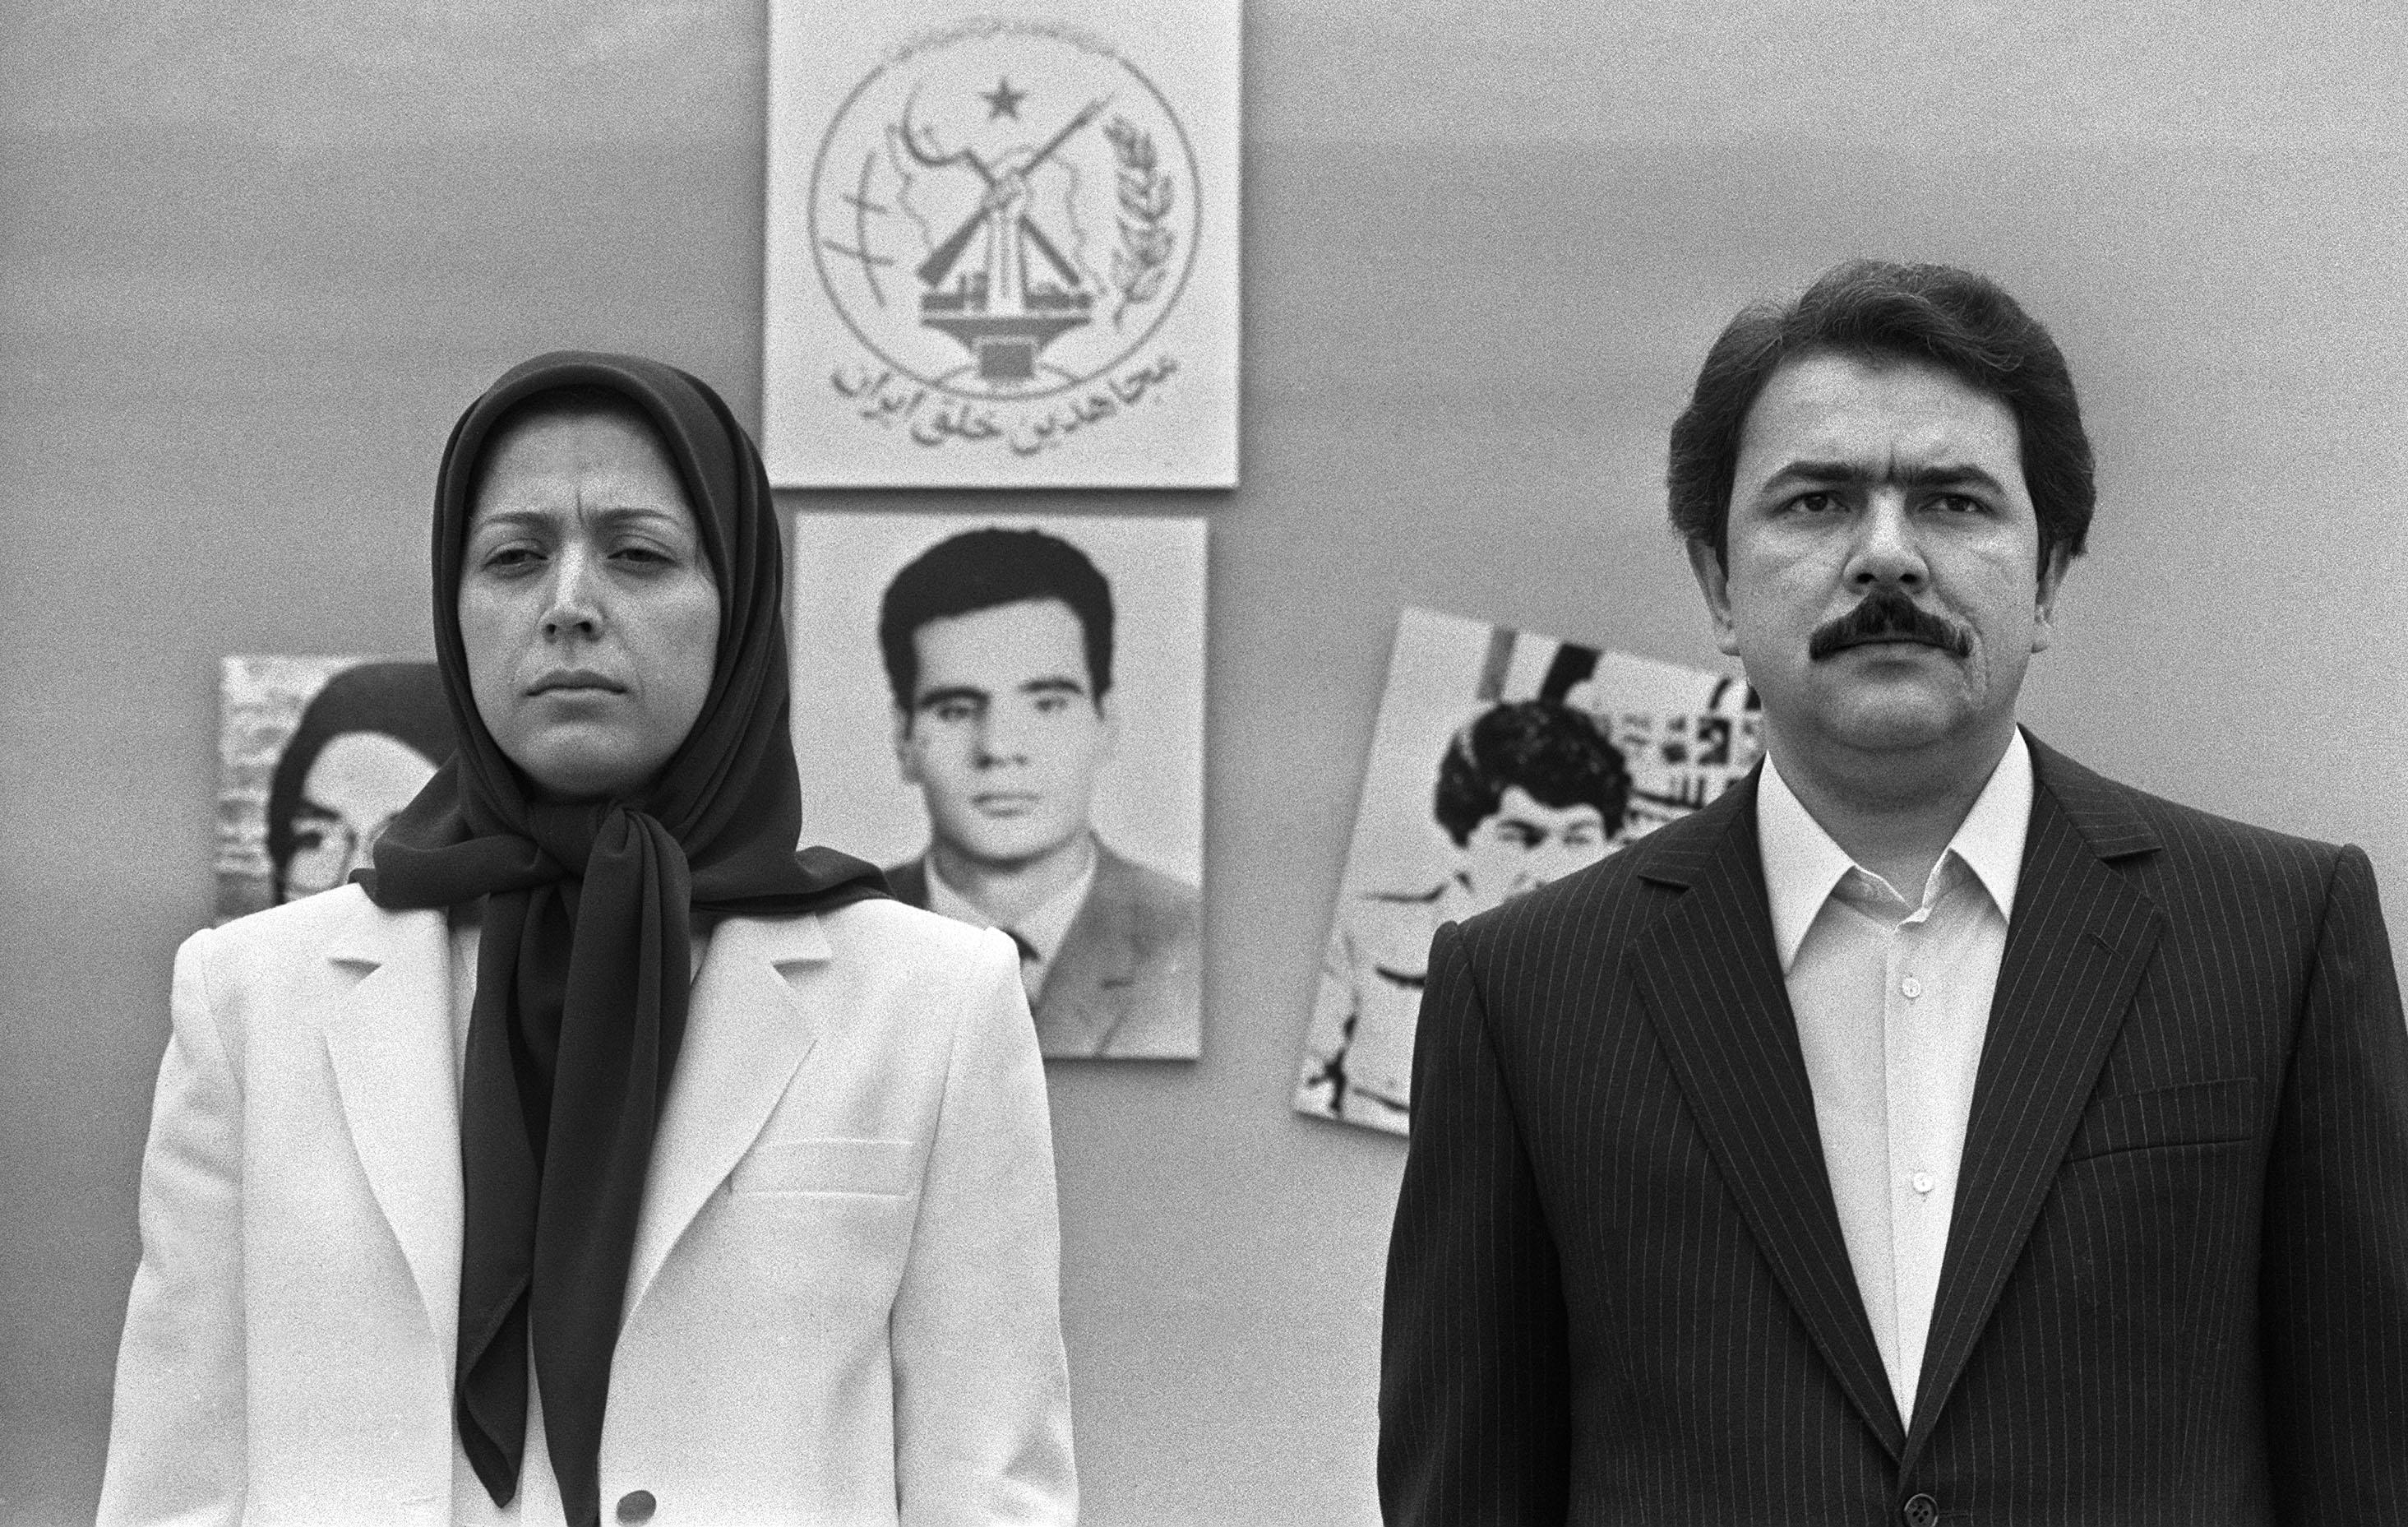 AUVERS-SUR-OISE, FRANCE:  Massoud Radjavi and his wife Maryam, leaders of the MEK, review militants celebrating their wedding 19 June 1985 at the headquarters of the National Council of Resistance of Iran (NCRI), the MEK's political front, at Auvers-sur-Oise, a northwestern suburb of Paris. Maryam Radjavi, arrested at the seat of NCRI in a massive crackdown by French police 17 June 2003 on her MEK organization, joined with her husband Massoud to turn Iran's main opposition group into a powerful military and political movement dominated by Marxism, Islam and Rajavi's personality cult.  AFP PHOTO DOMINIQUE FAGET